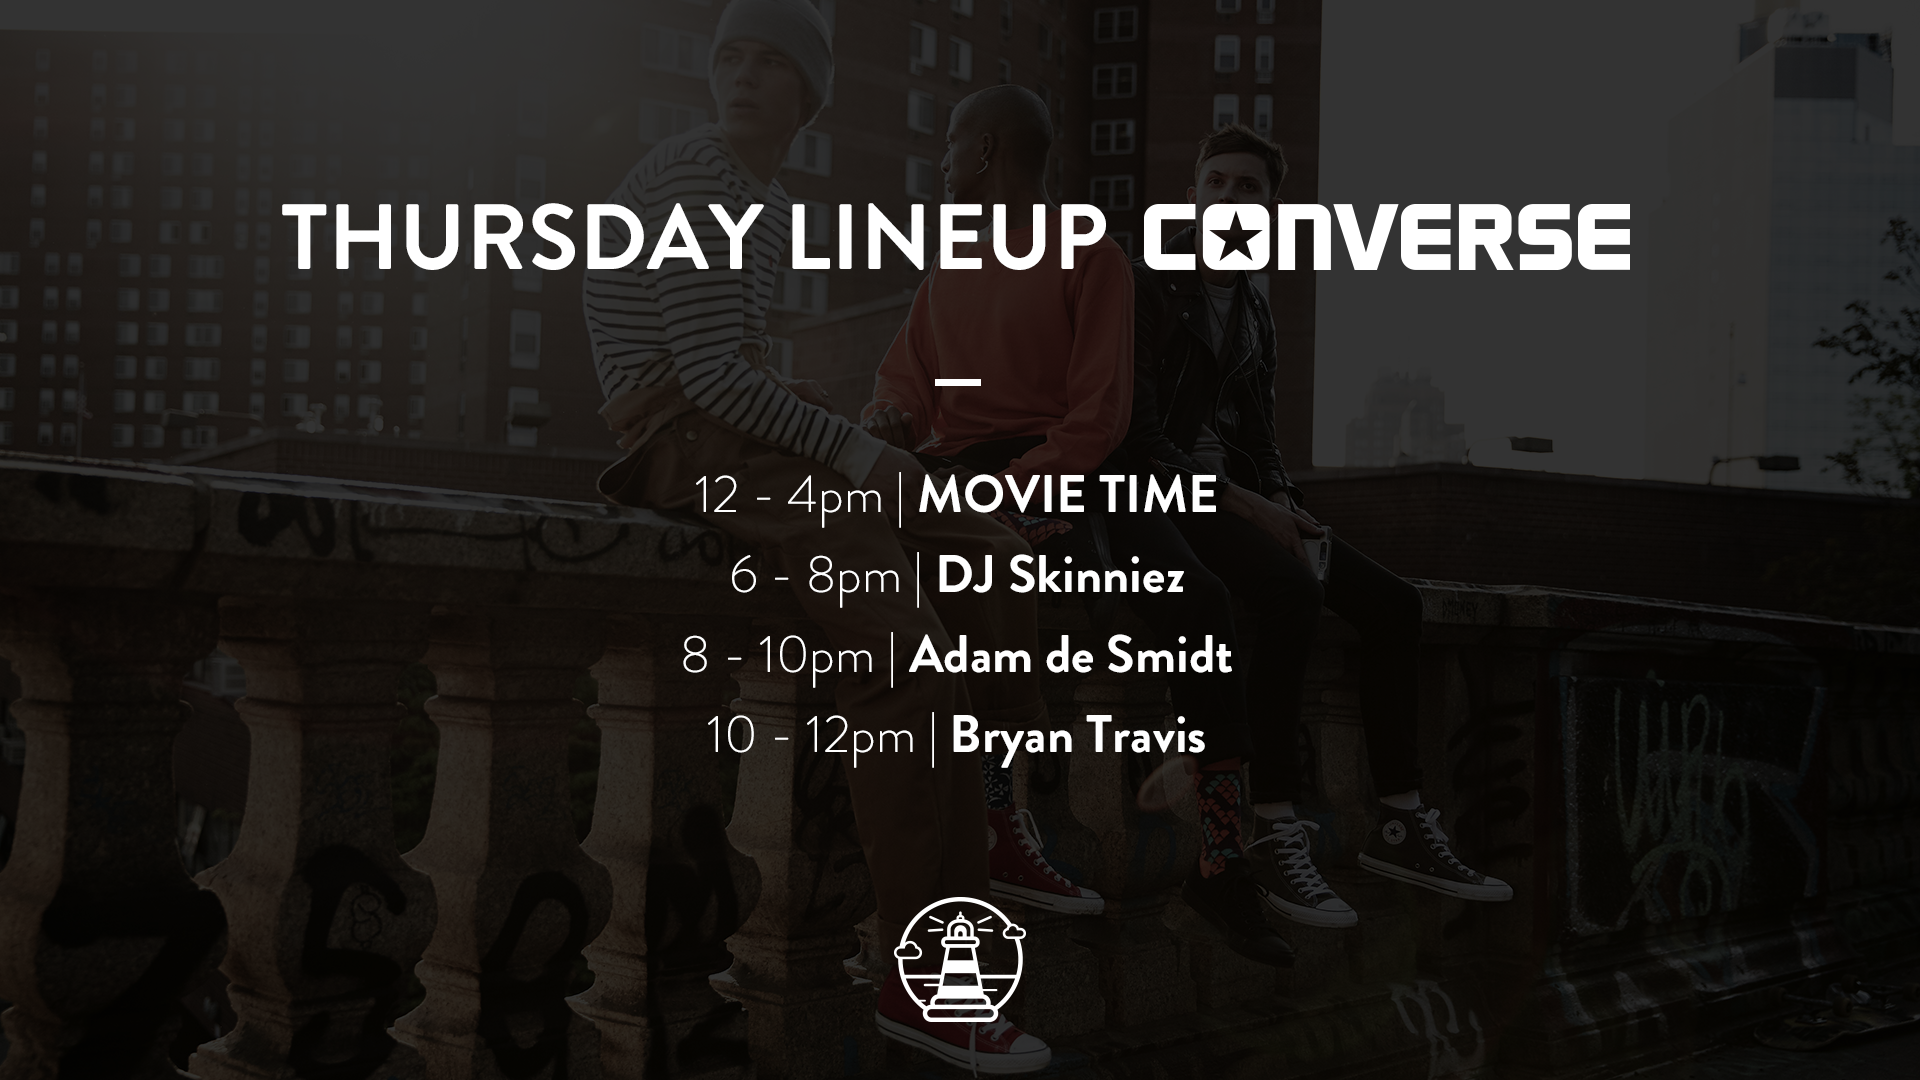 Converse-screen-lineup-artwork-3.png